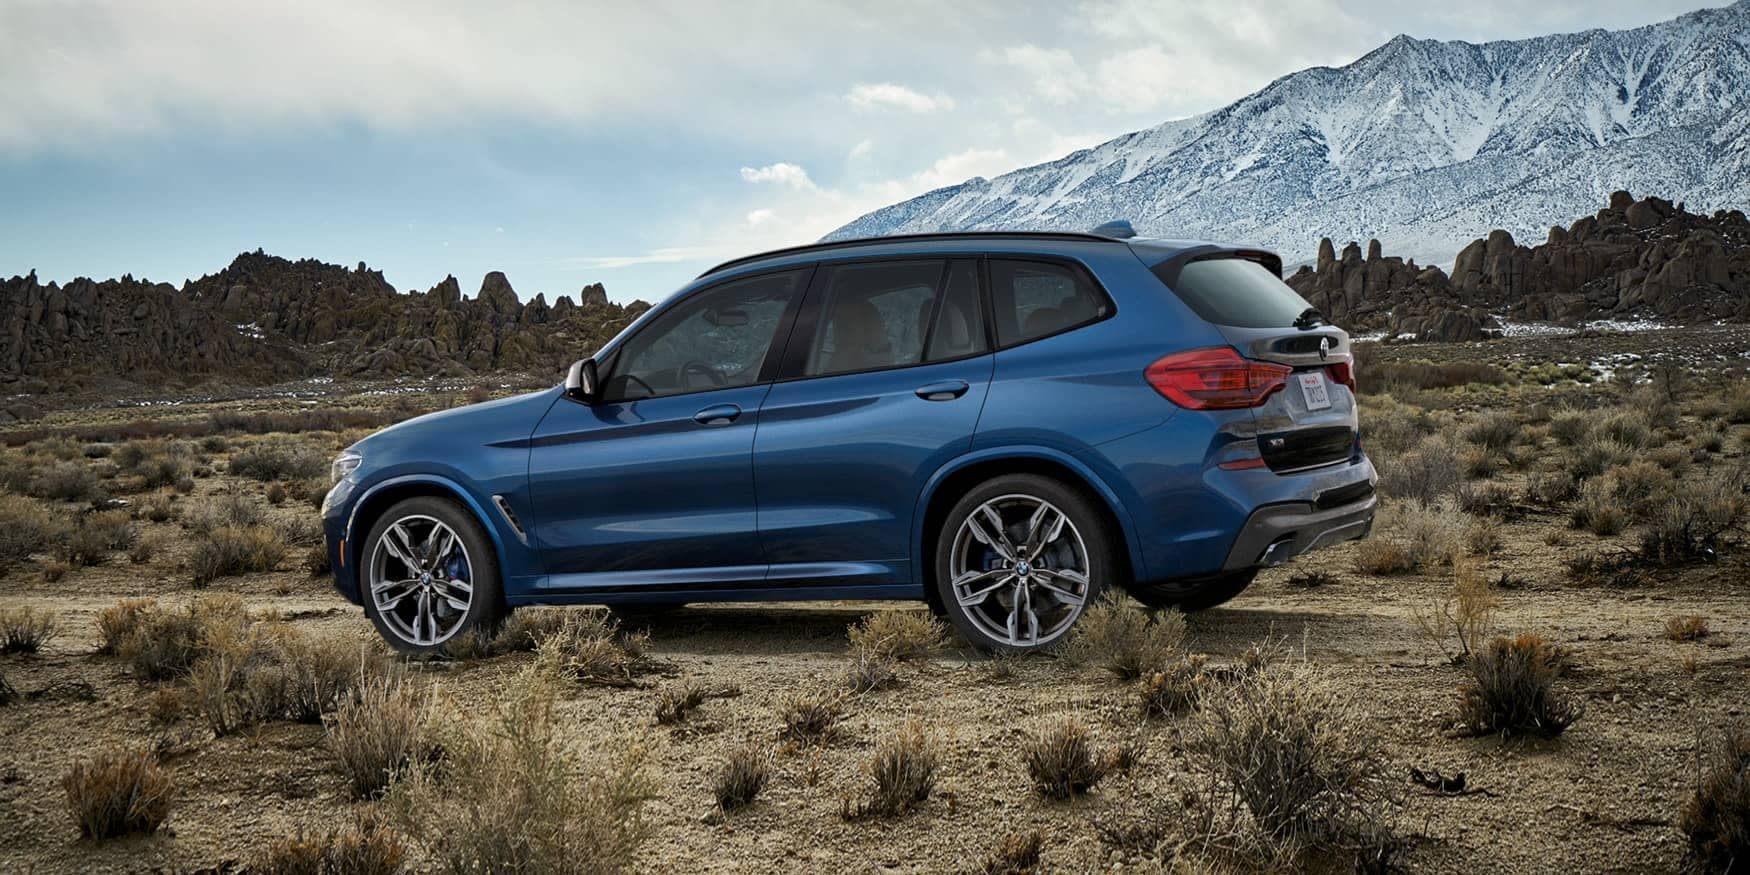 Blue 2020 BMW x3 driving on dirt road